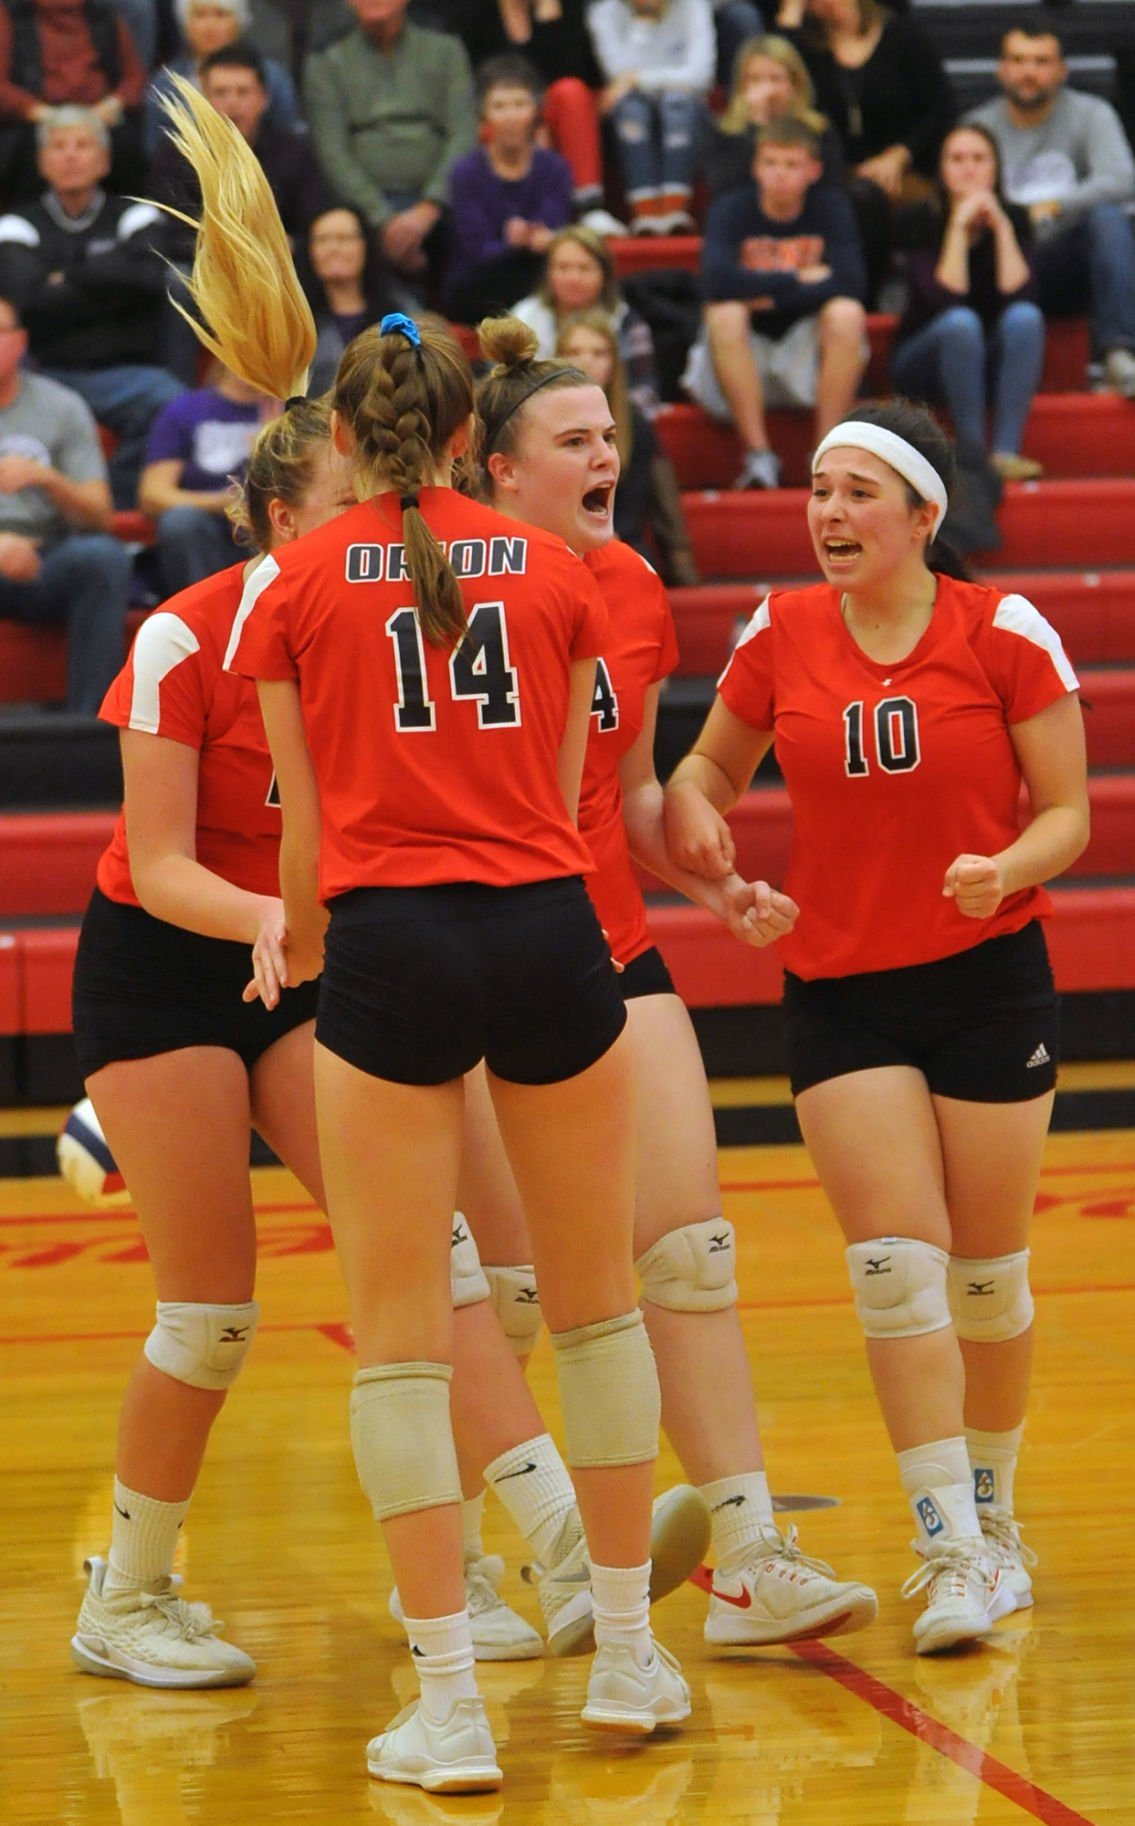 Orion vs El Paso Sectional volleyball tournament